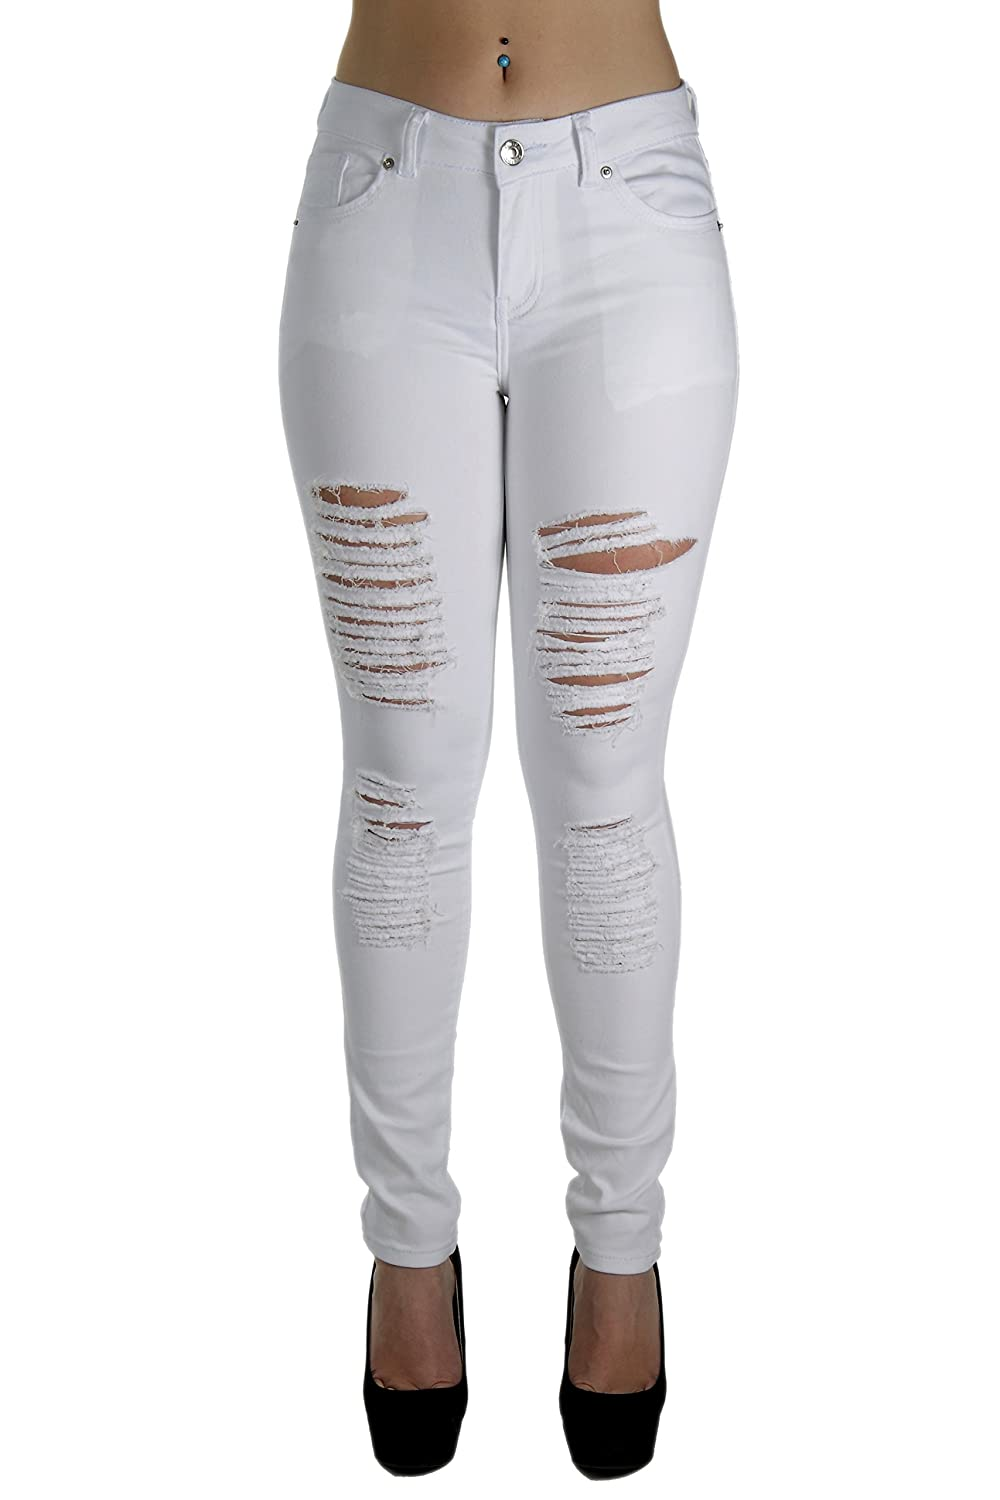 CH051R-P- Plus Size Fashion Colored Jeans Destroyed Ripped